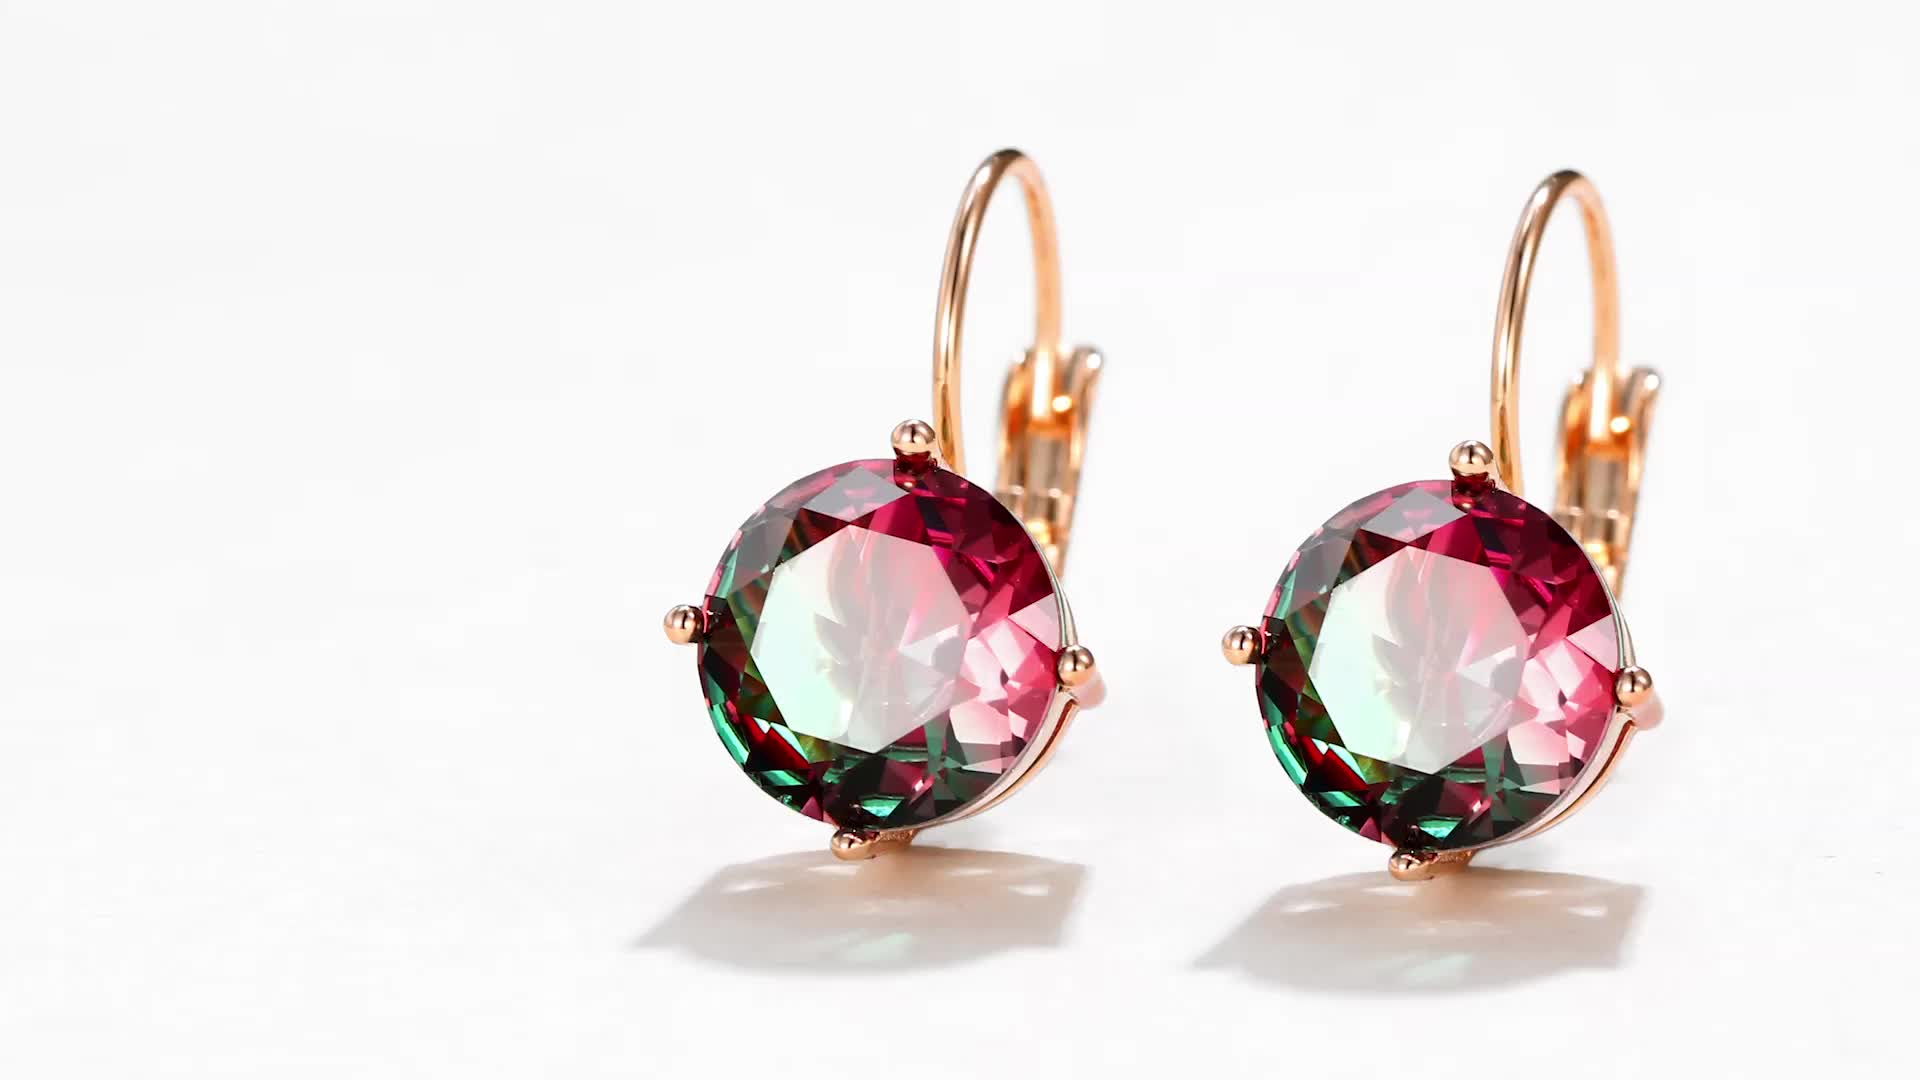 98240 xuping elegant multi-stone earring, latest design ,rose gold plated Love with  infinite shape earring jewelry